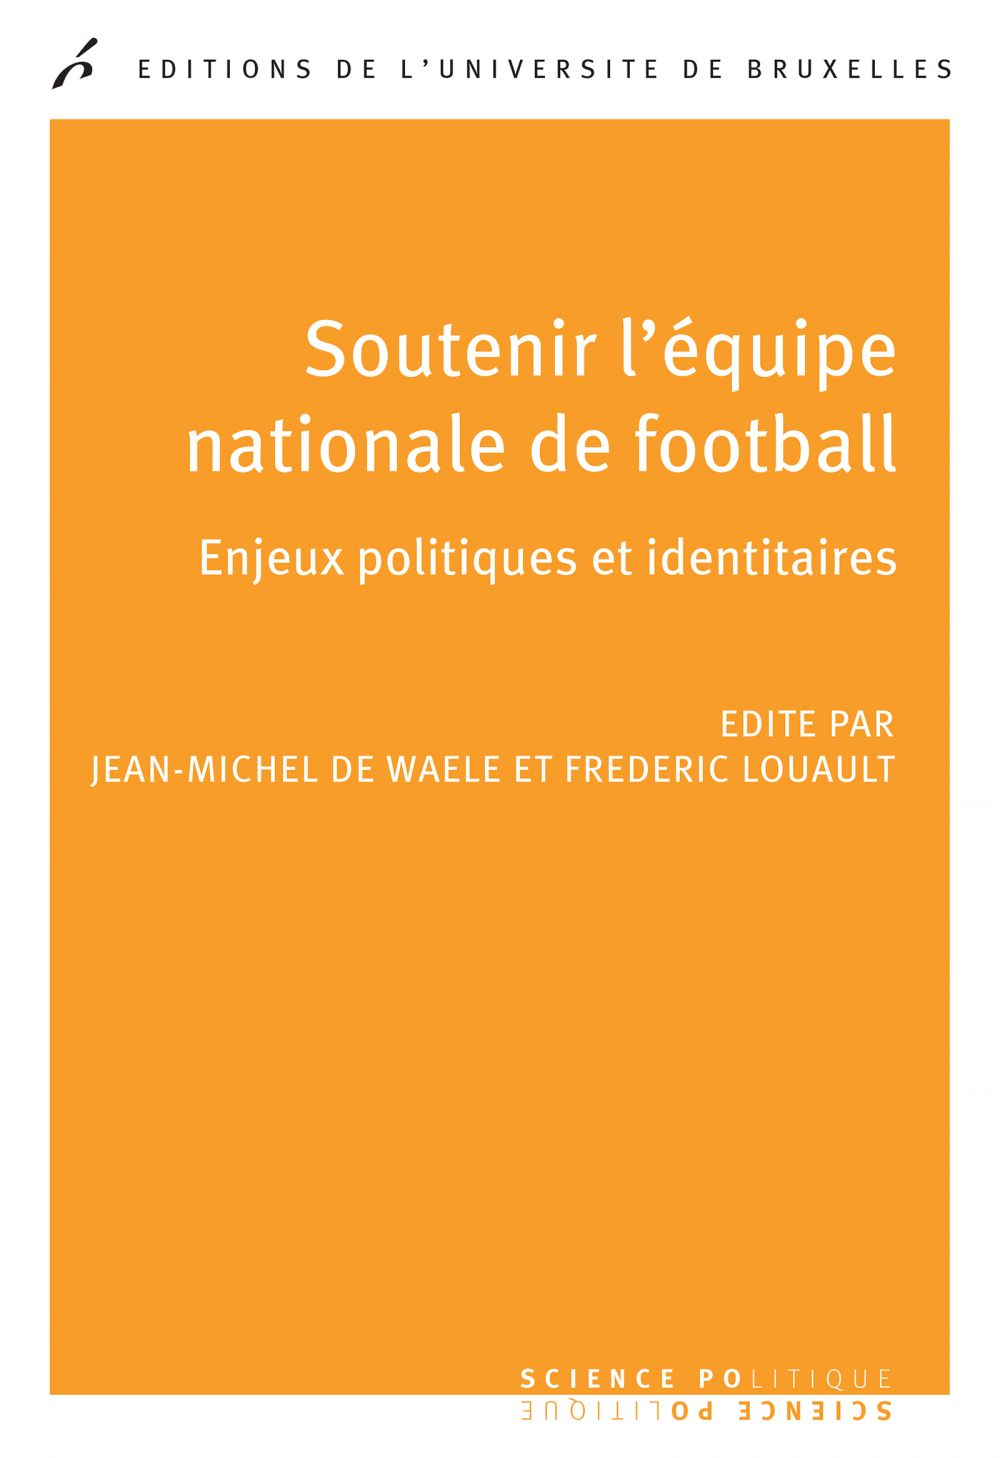 Soutenir l'équipe nationale de football